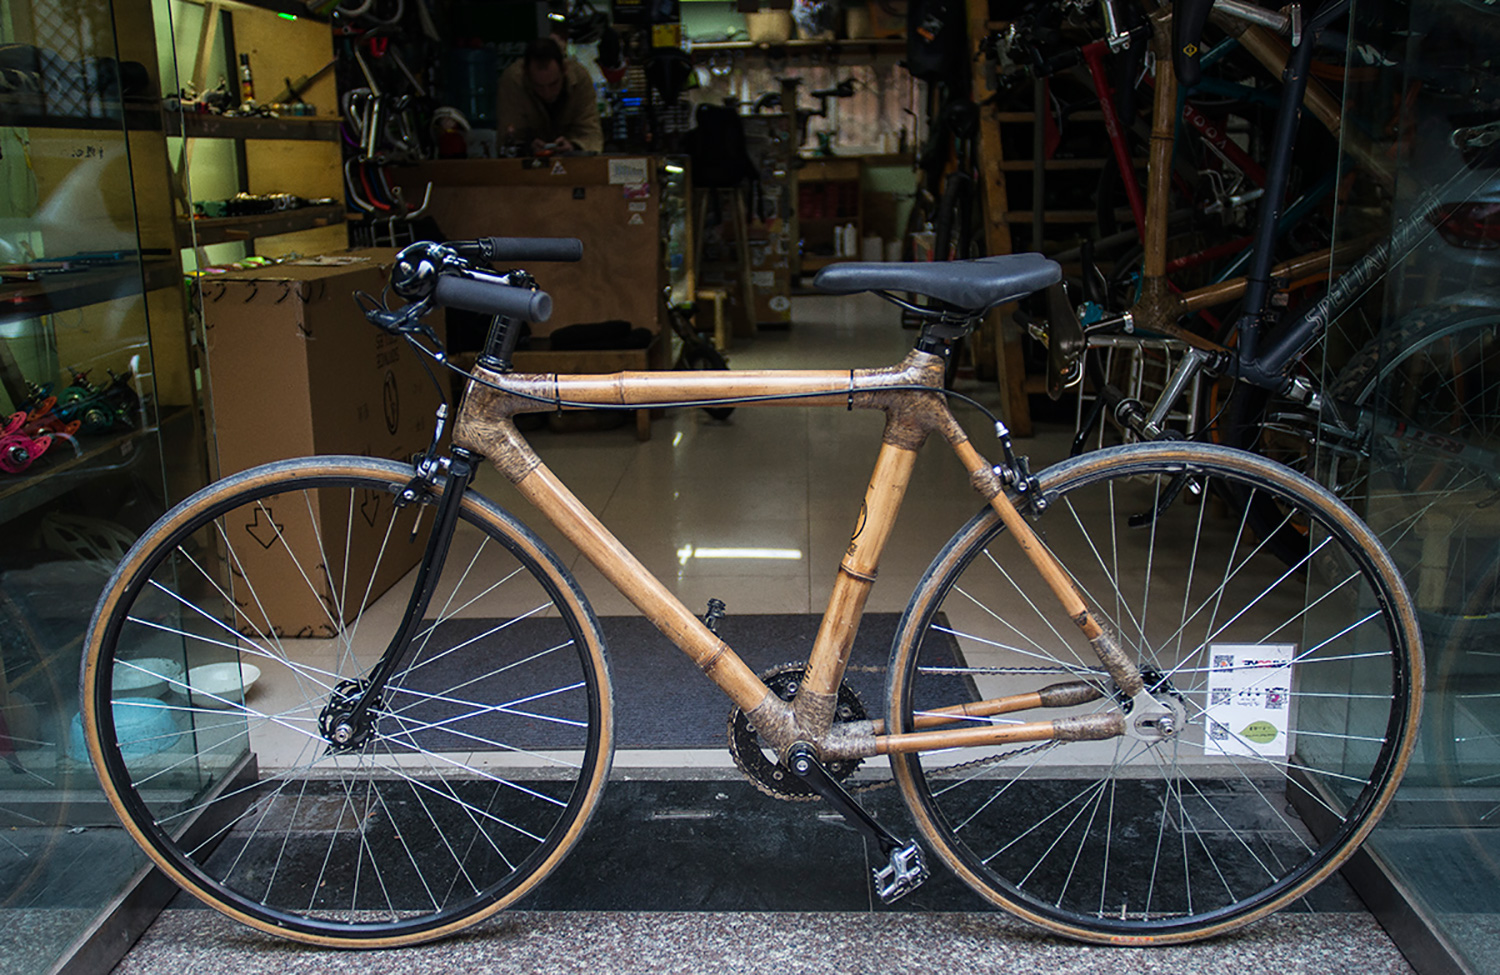 The Bamboo Bicycles Of Chengdu Chinafile